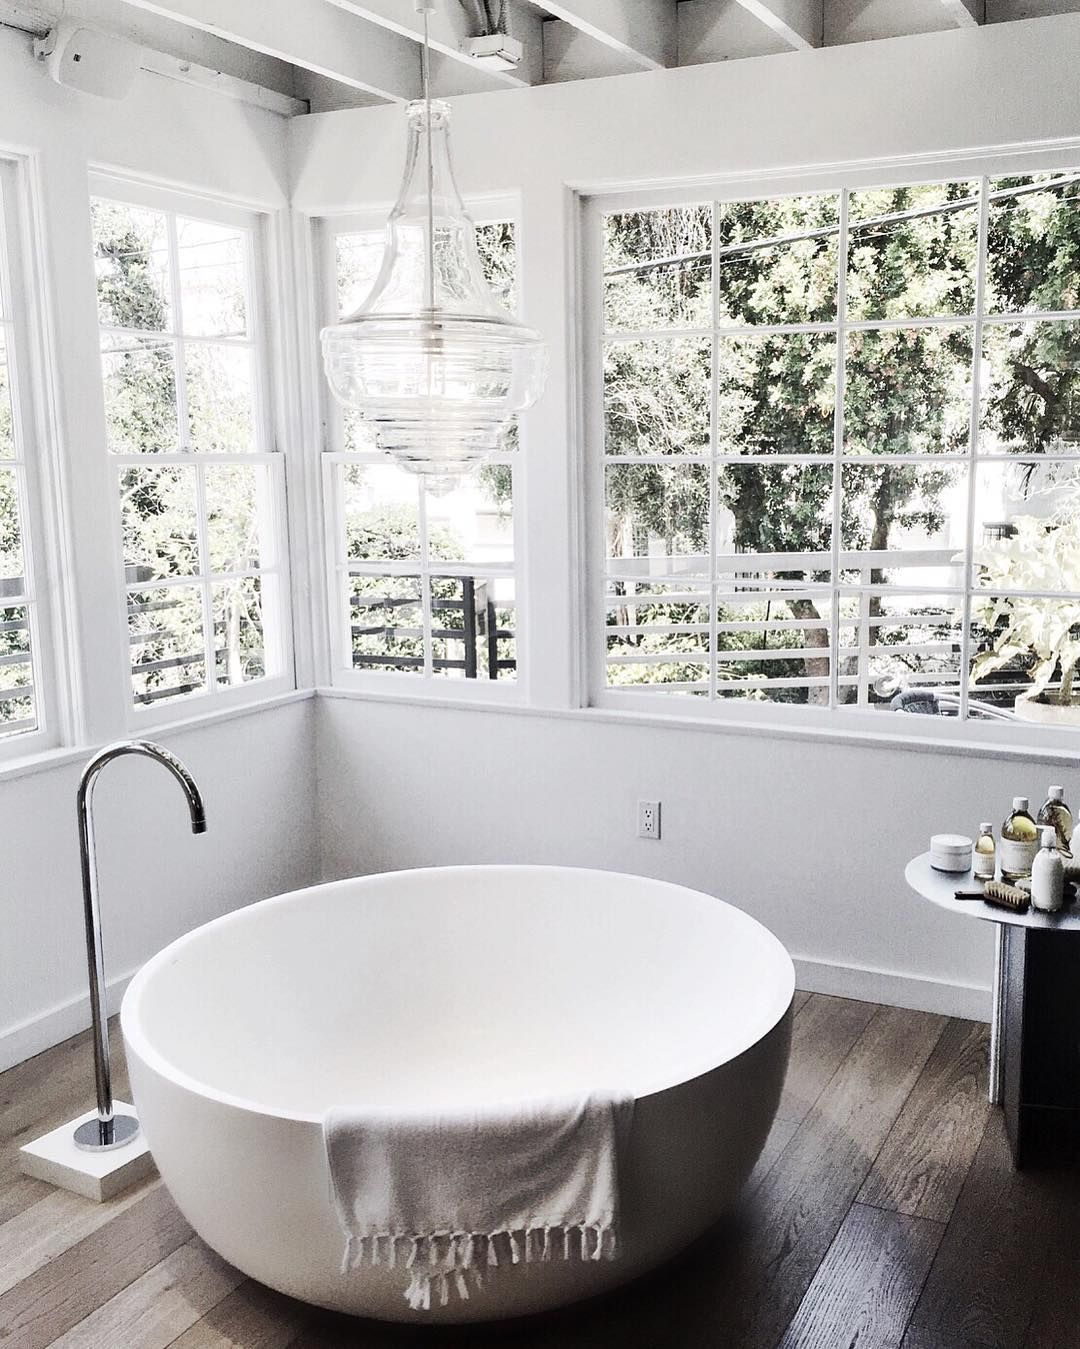 dream bath | Bathtub dreams | Pinterest | Bath, Tubs and House